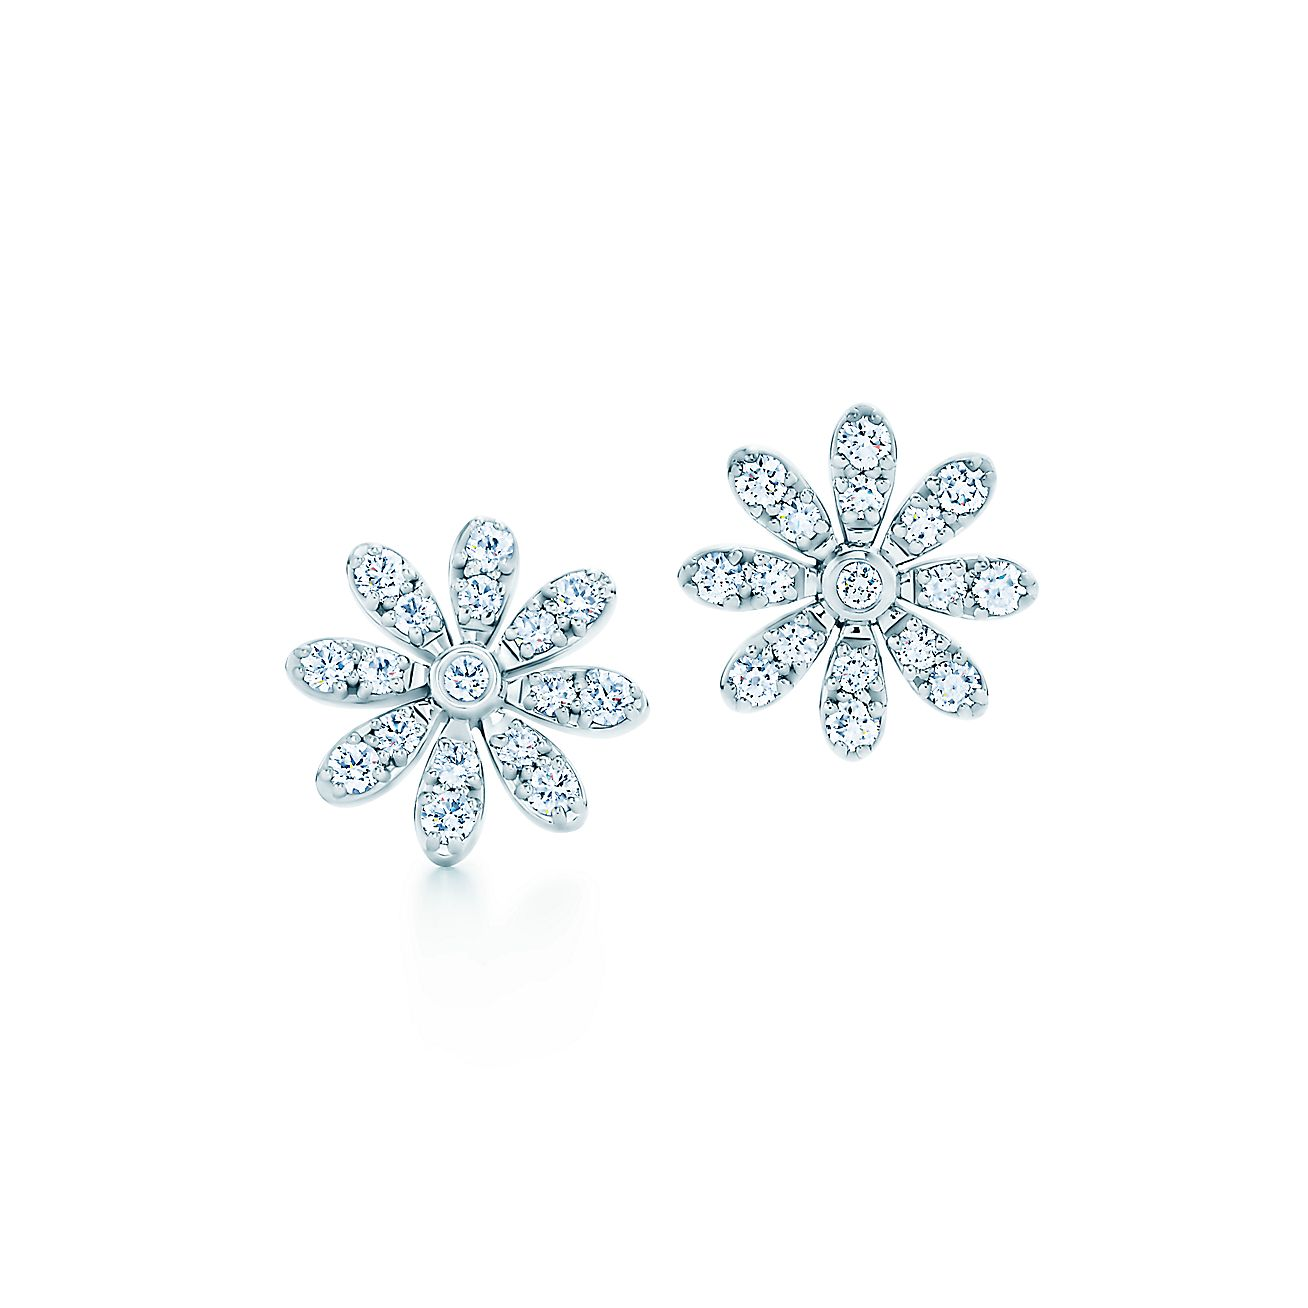 Tiffany Metro:Daisy Earrings